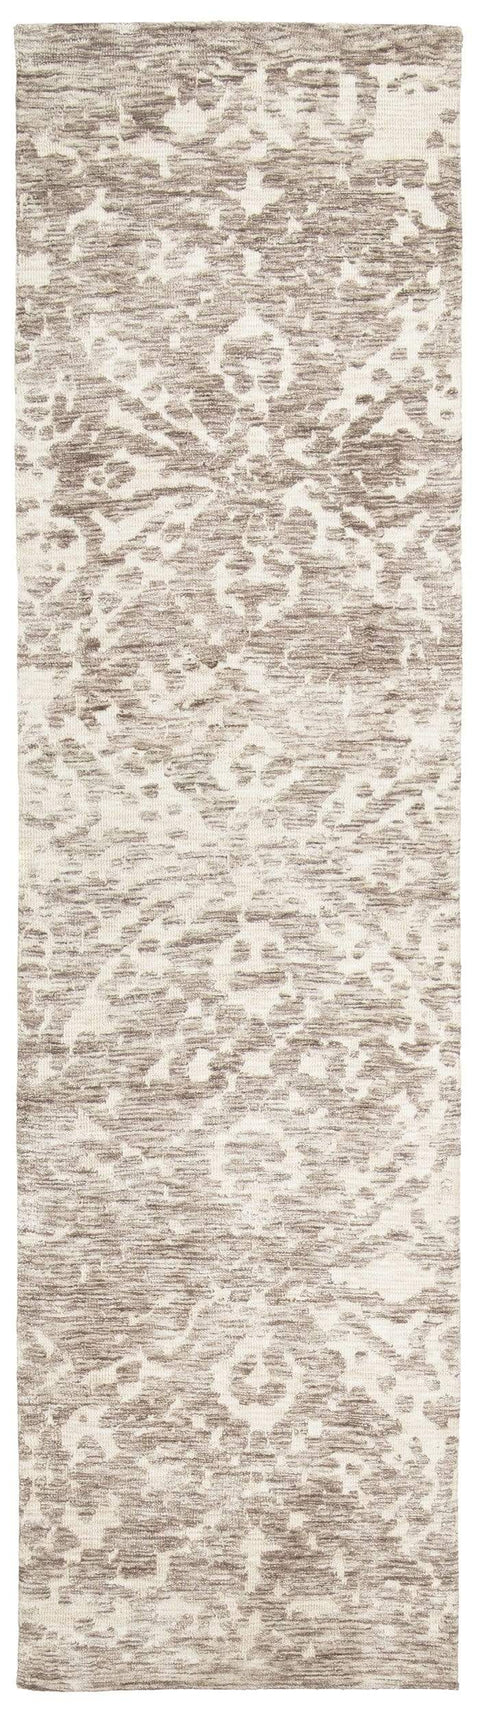 Quinn Grey Ivory and Cream Floral Motif Runner Rug